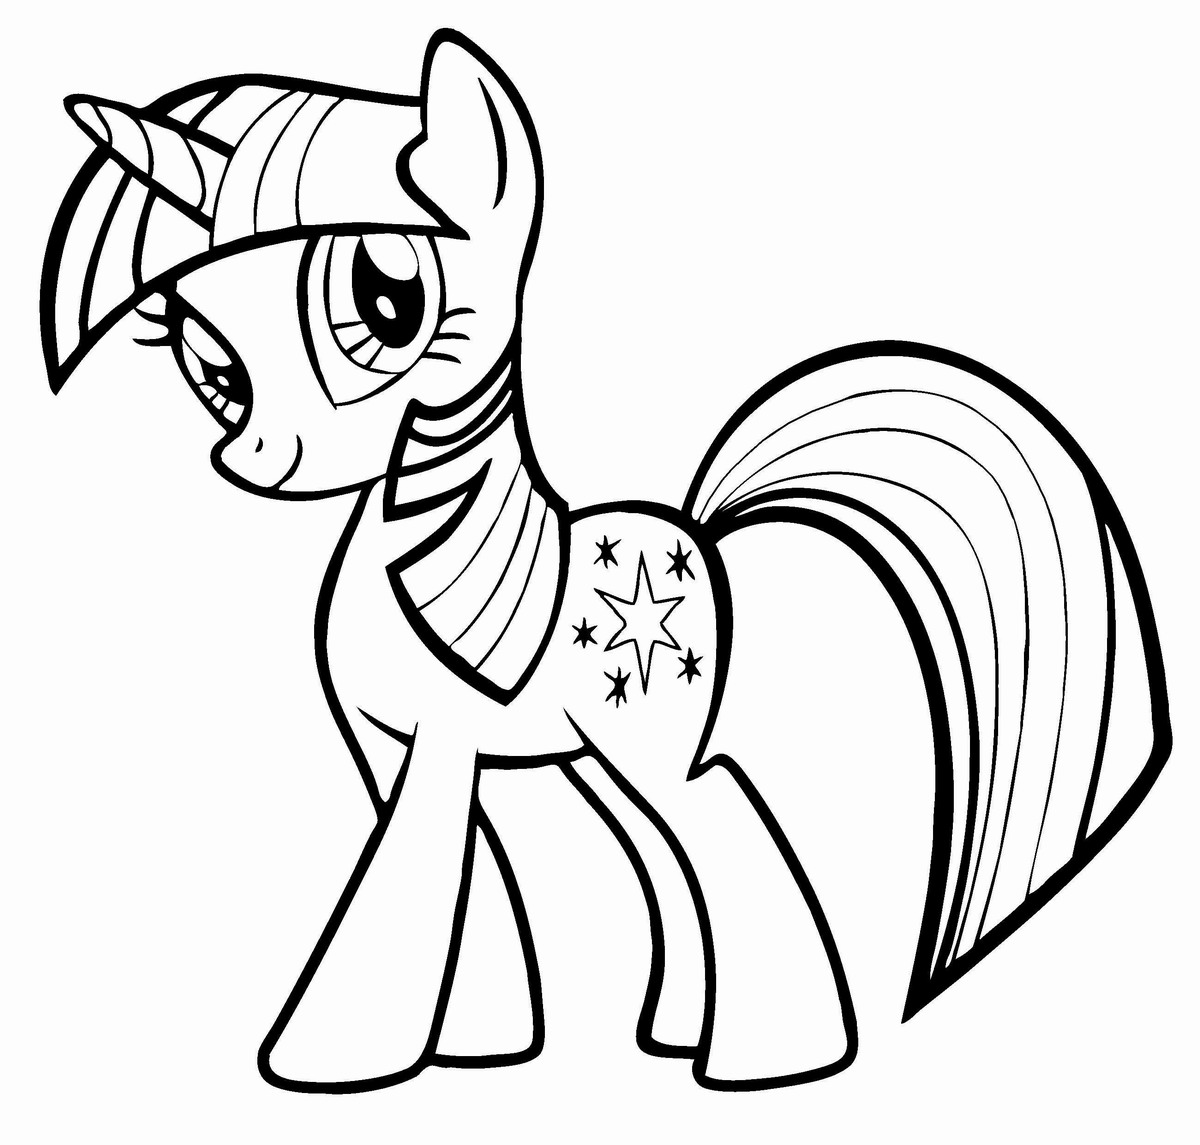 my little pony coloring pages printable my little pony coloring pages printable activity shelter coloring little printable pony pages my